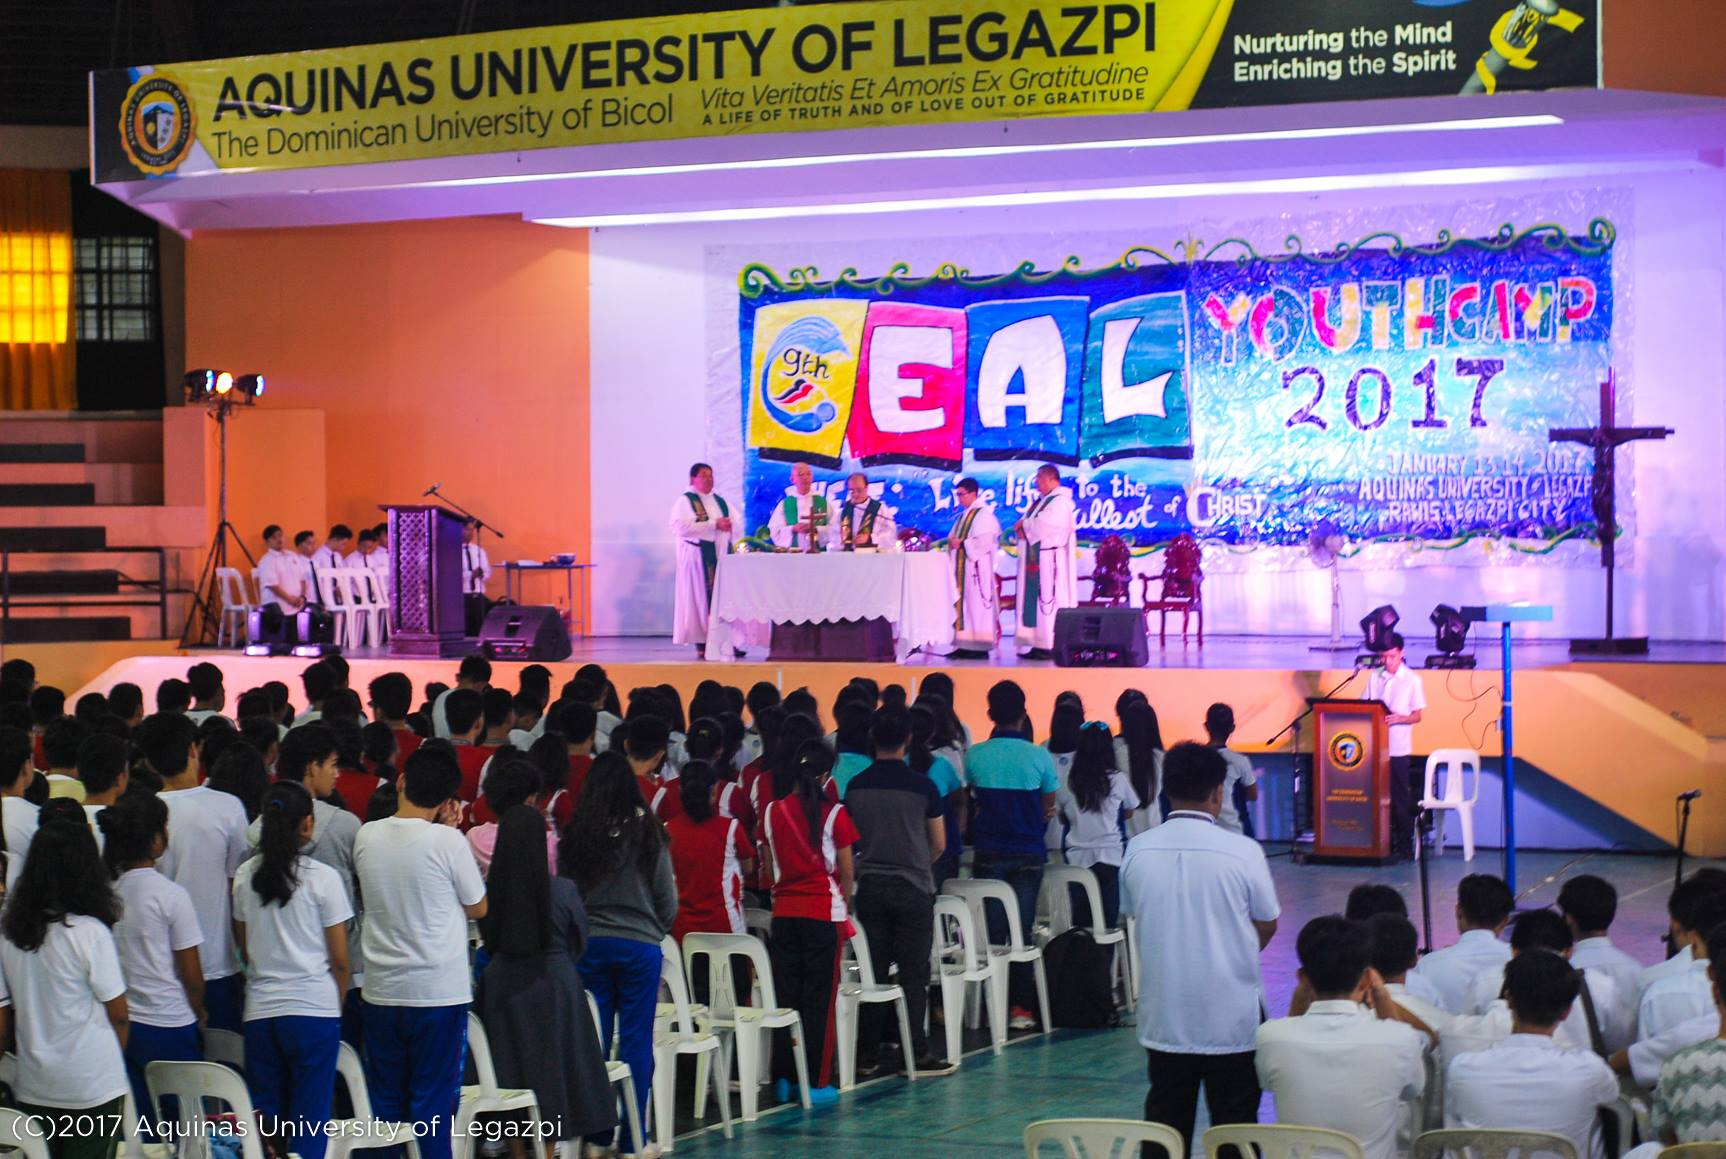 CEAL Youth Camp 2017